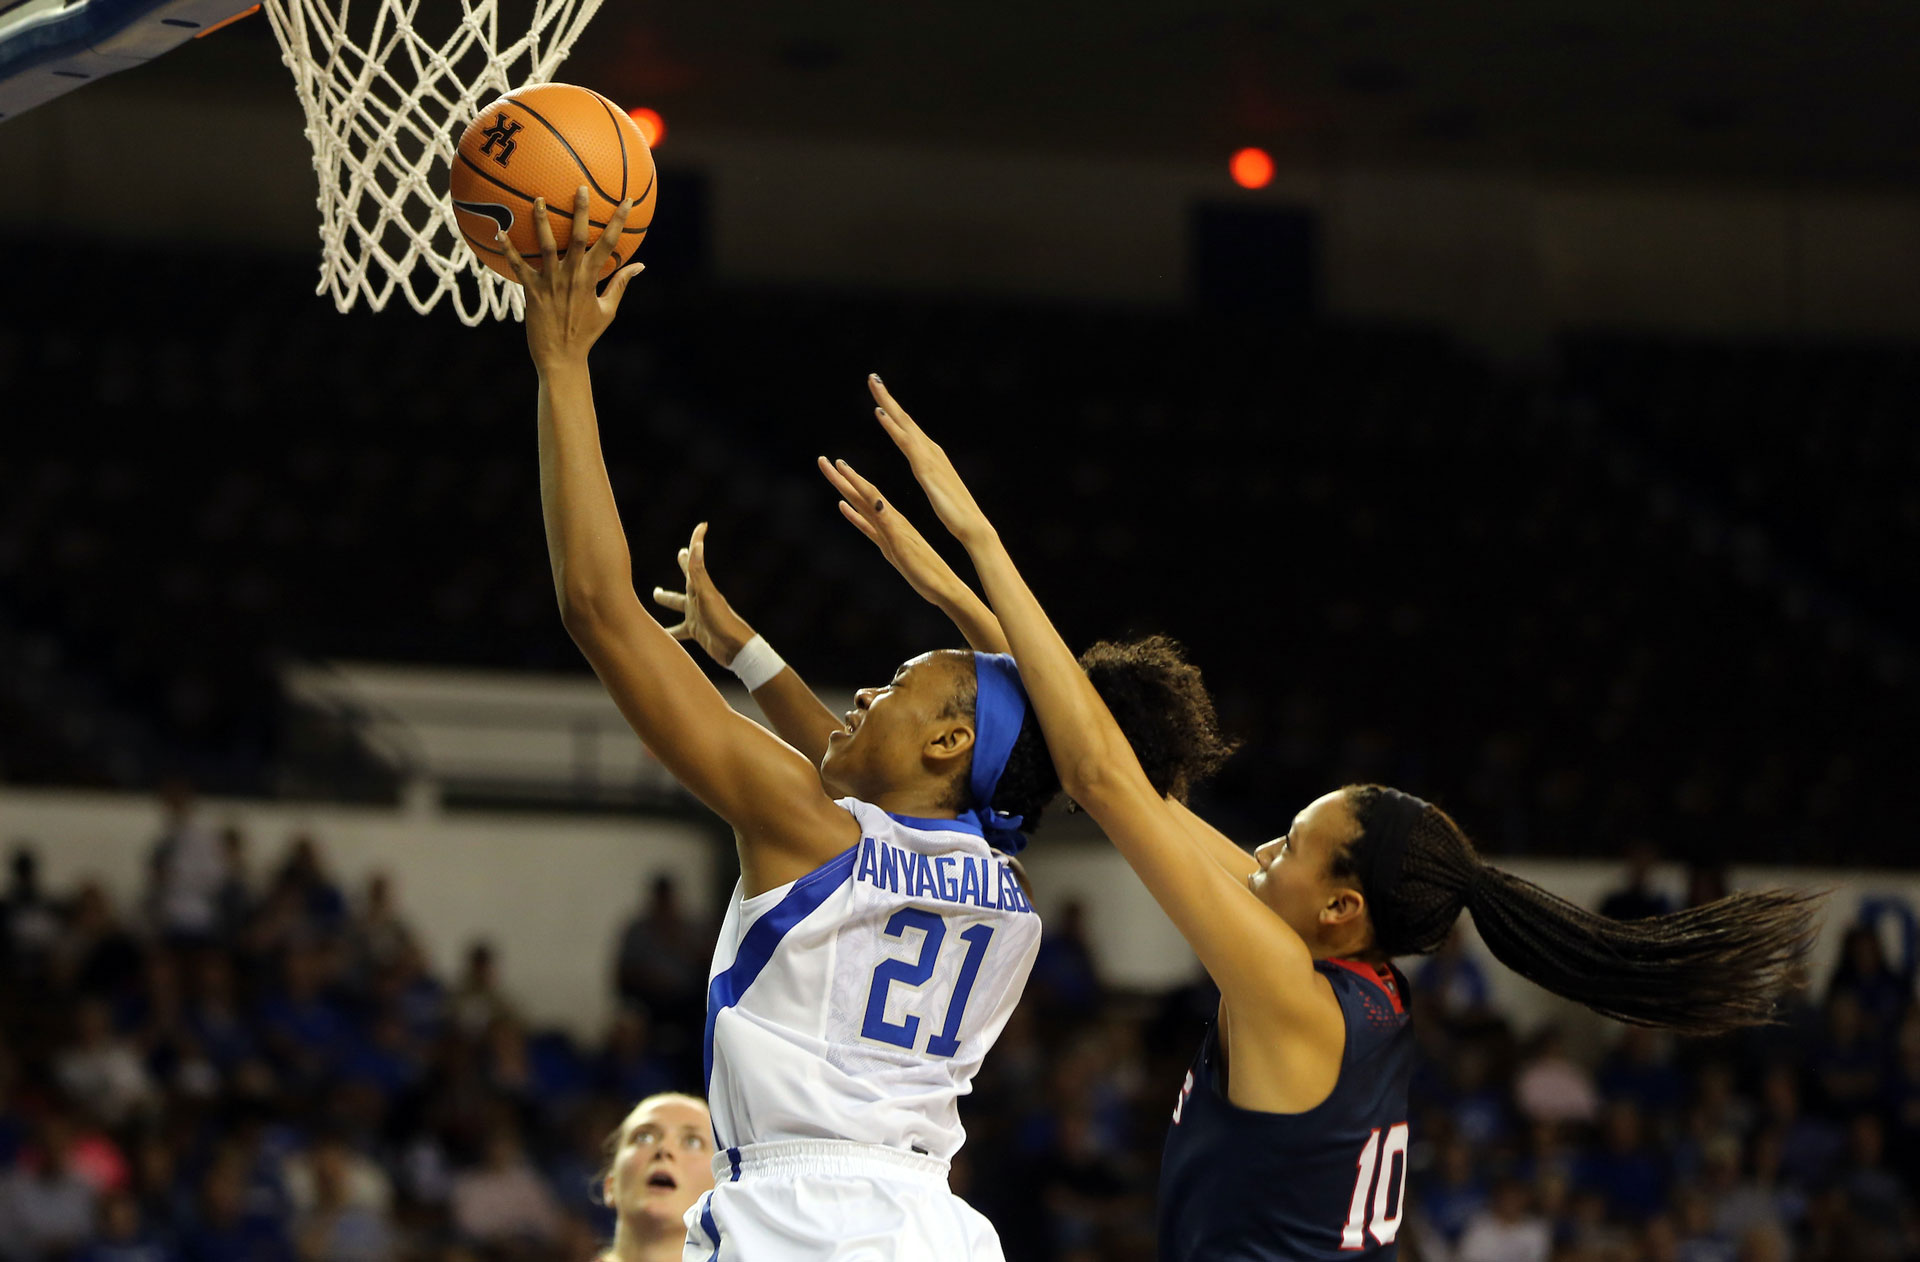 An action shot of Ogechi during a game, jumping up to the basket with a basketball in her hand and an opposition defender behind her.